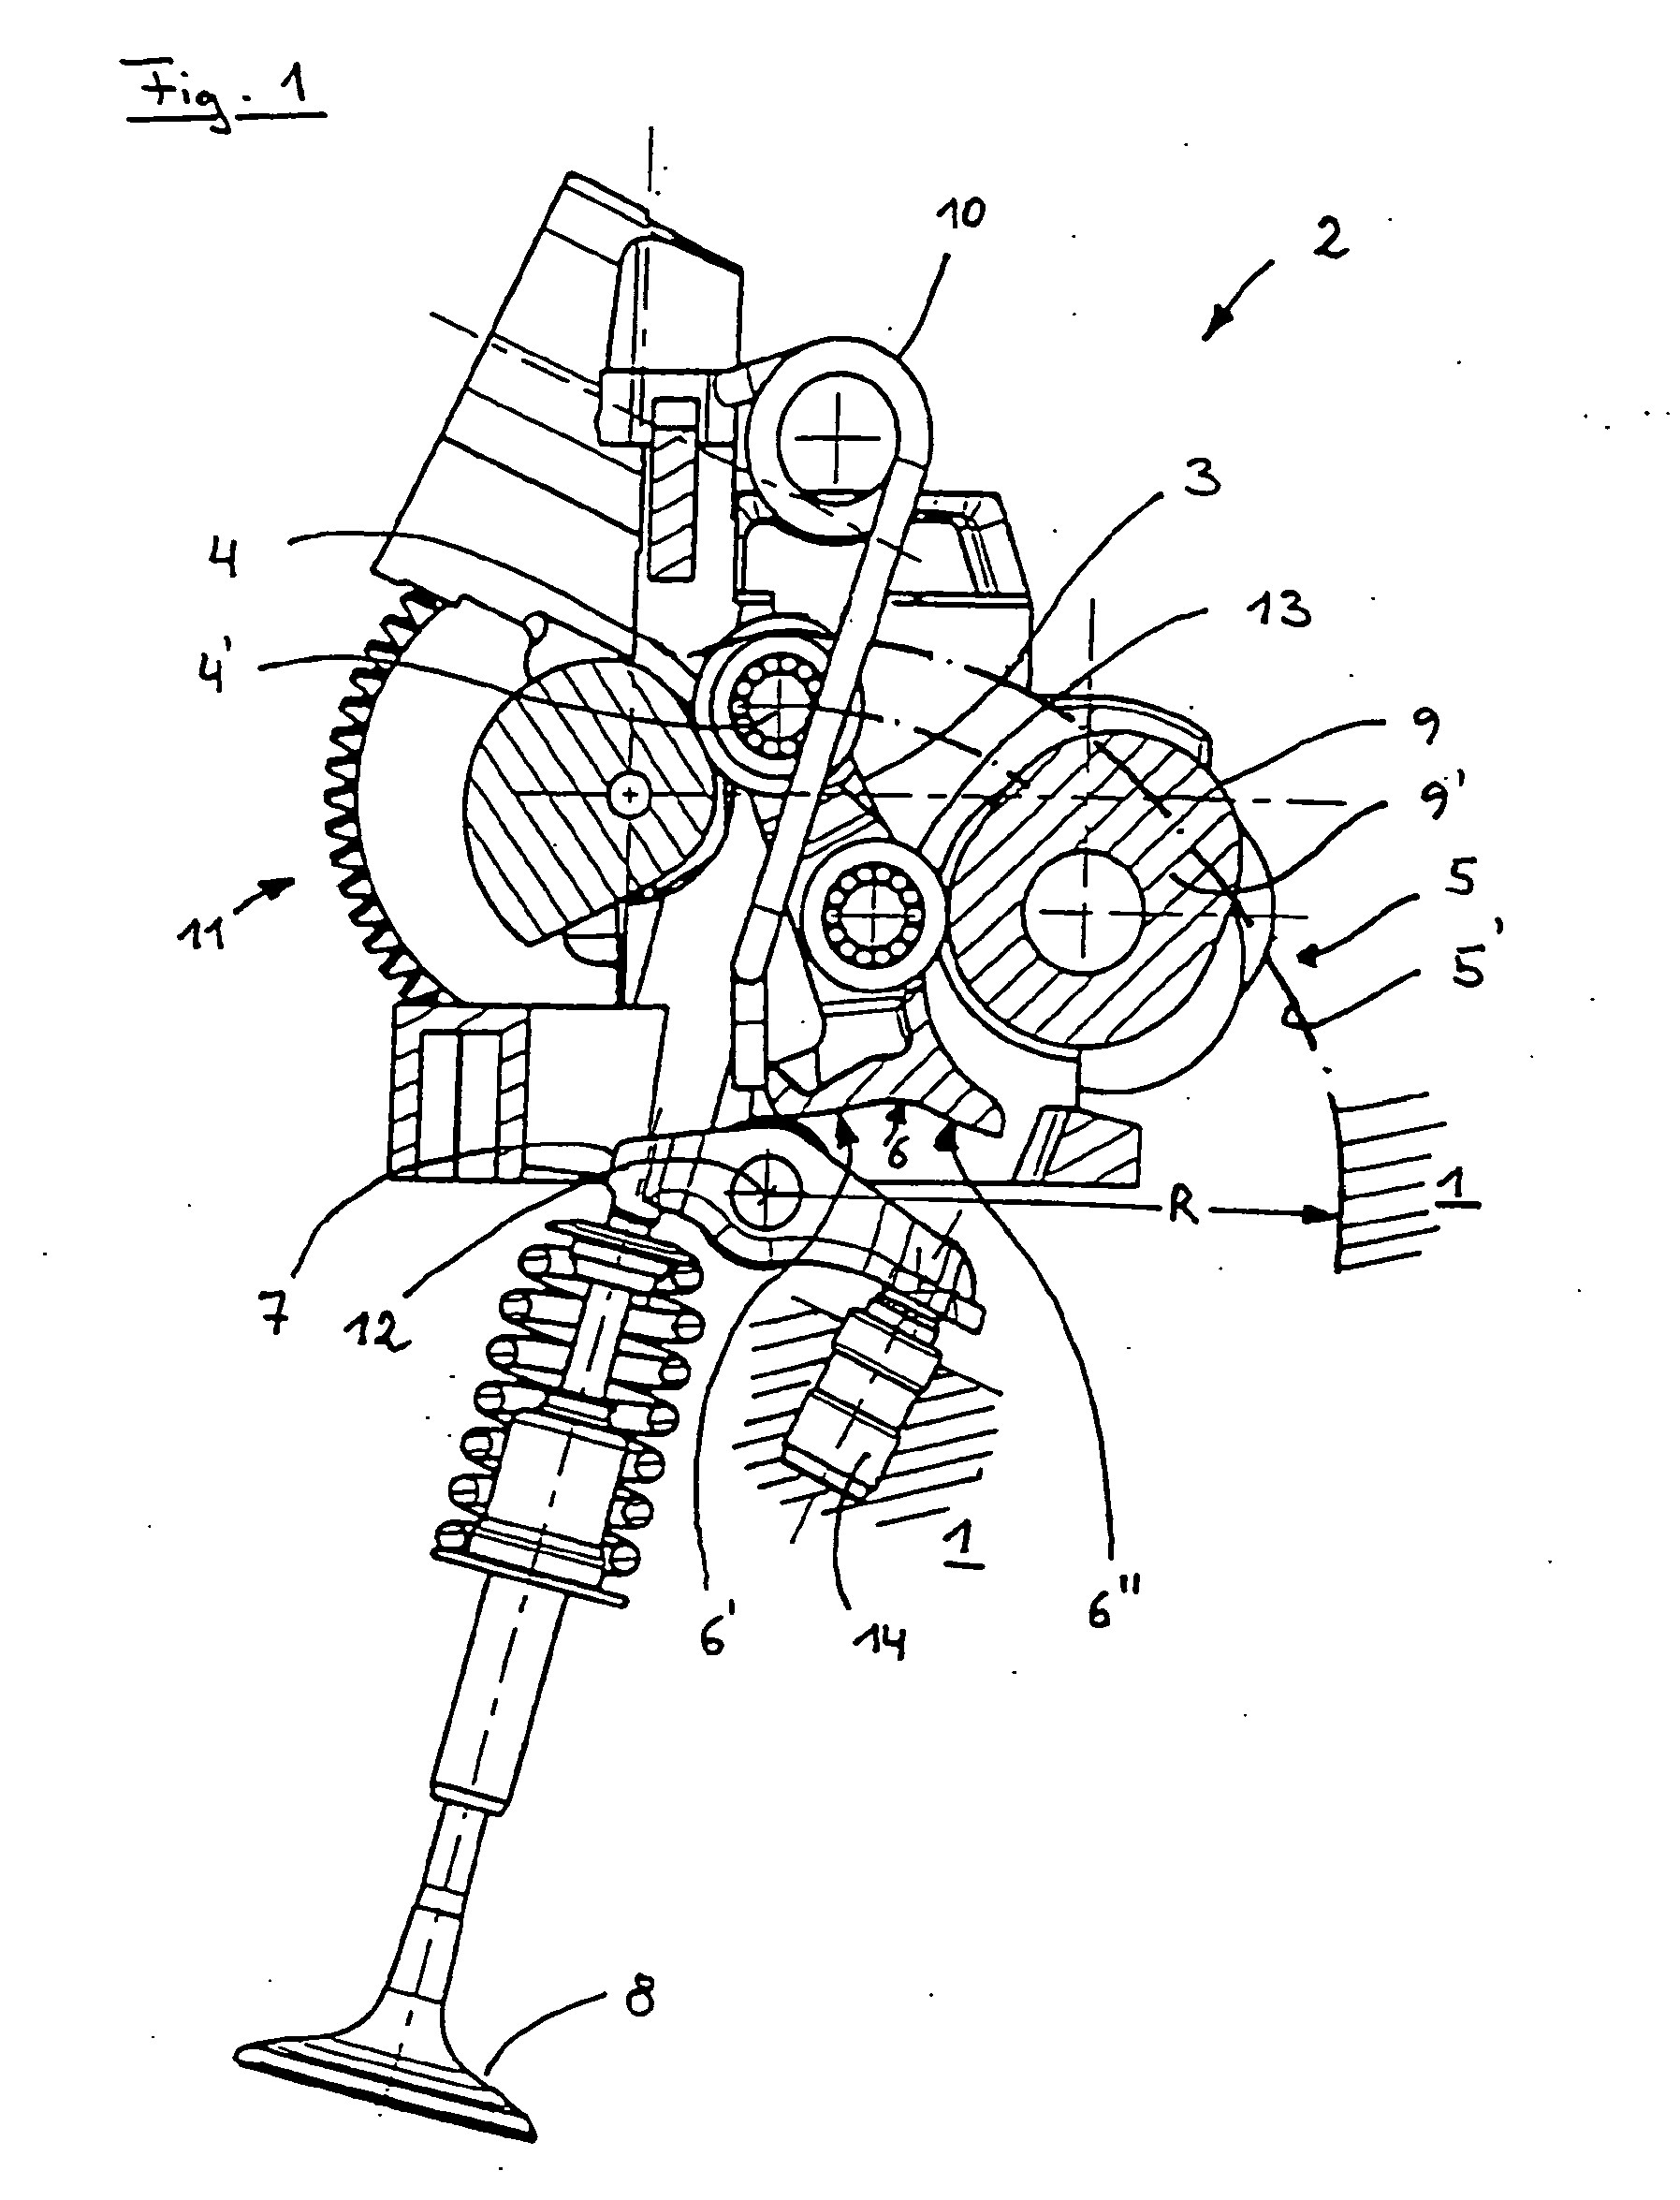 Combustion Engine Lever : Patent ep b rocking lever for valve drive with